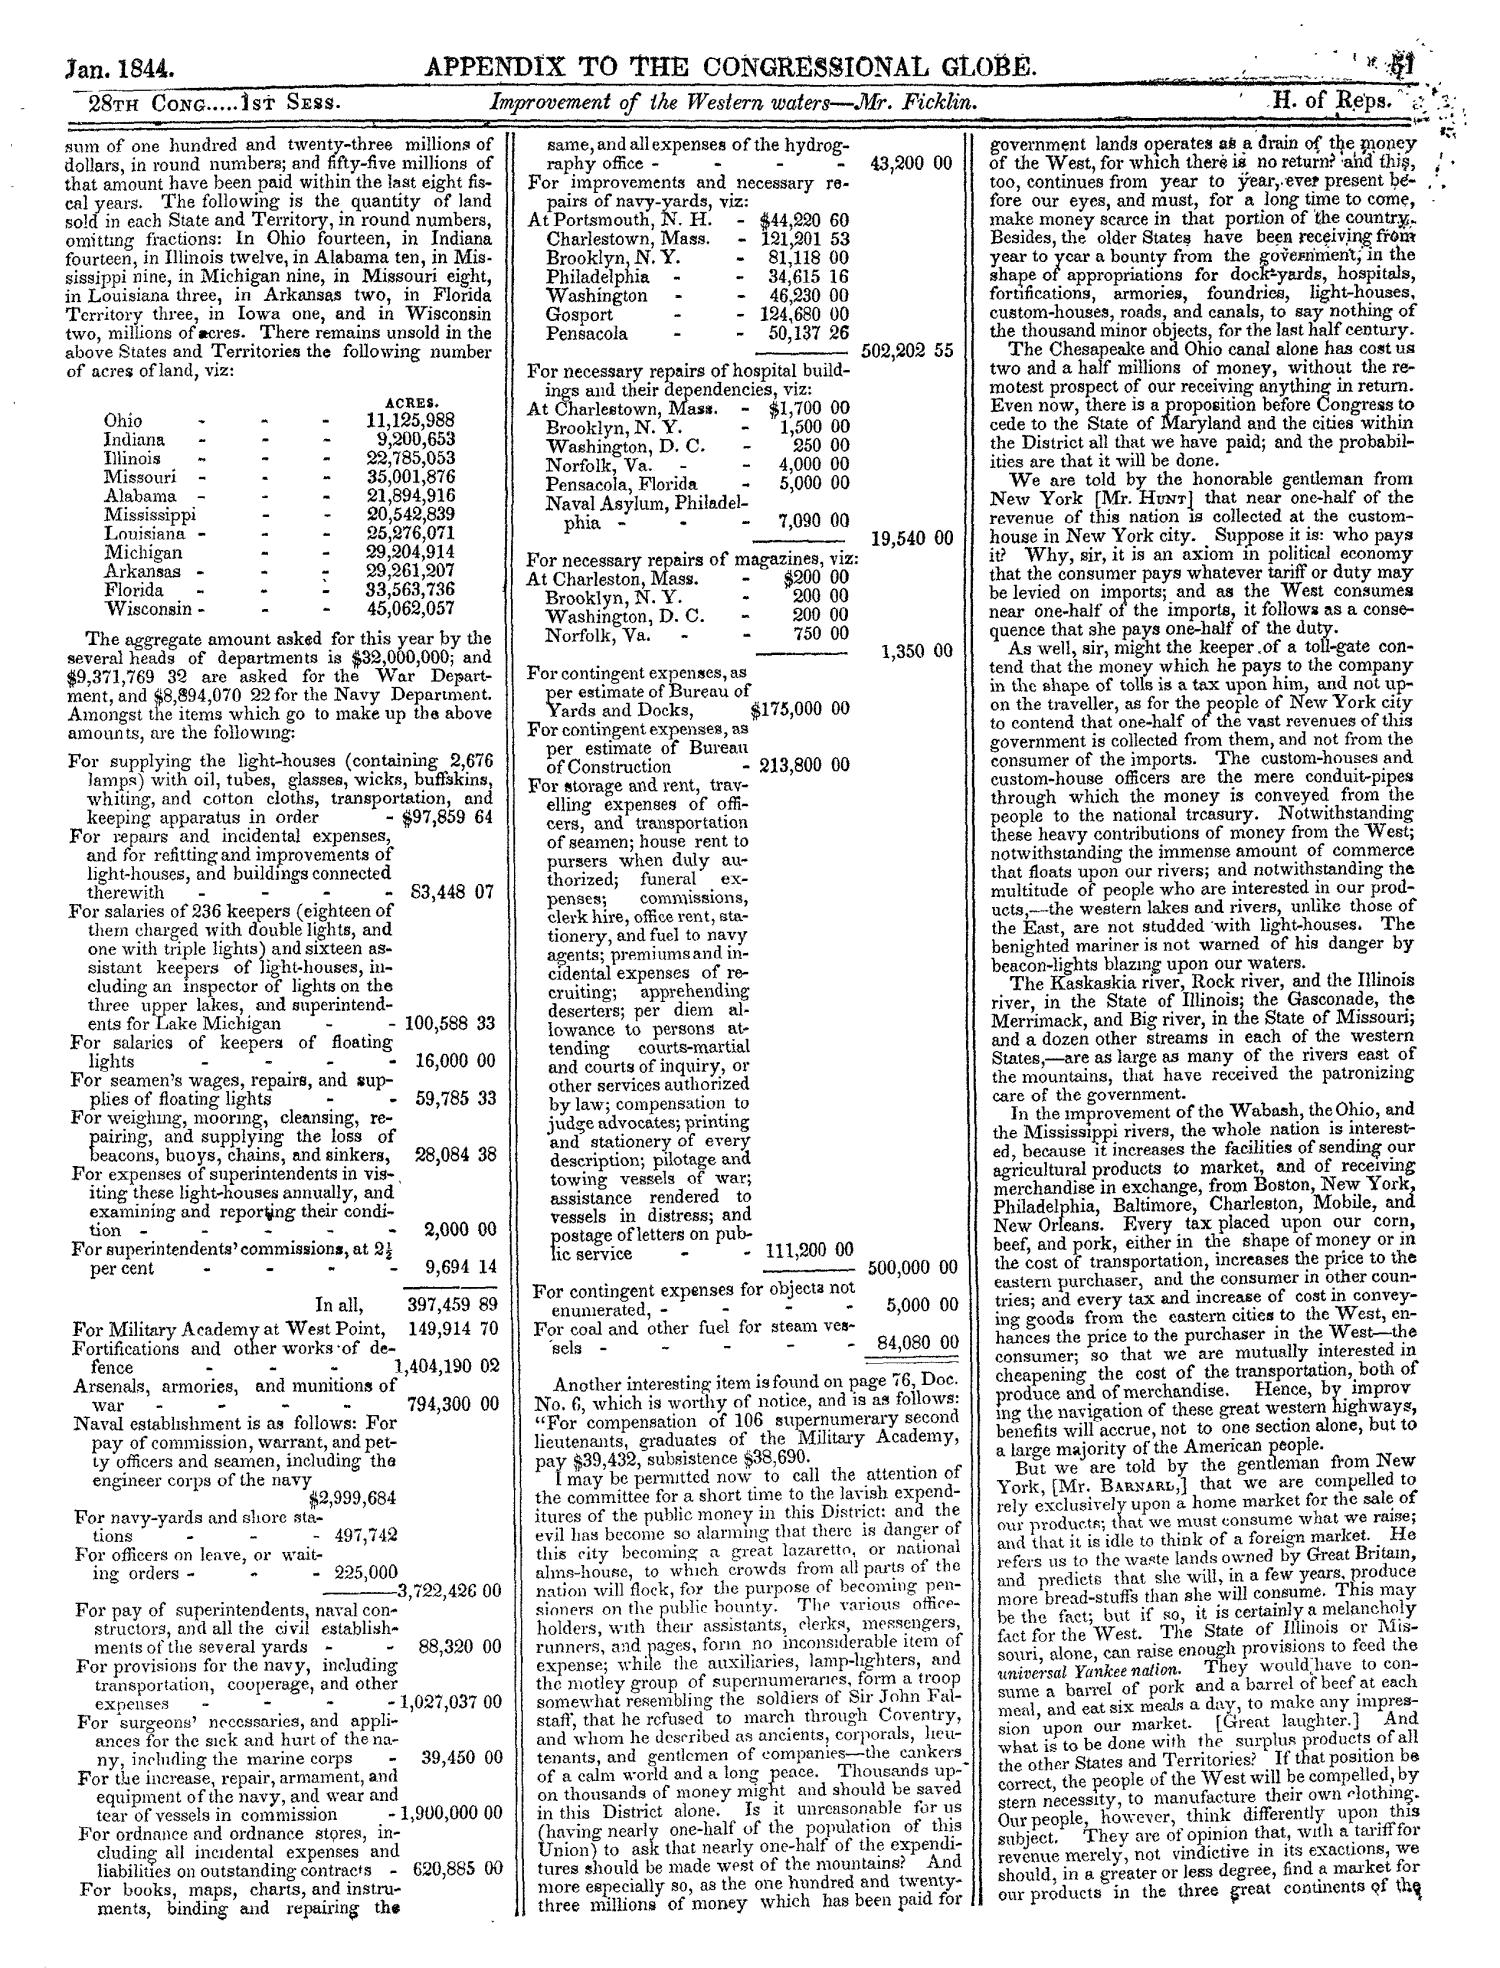 The Congressional Globe, Volume 13, Part 2: Twenty-Eighth Congress, First Session                                                                                                      51